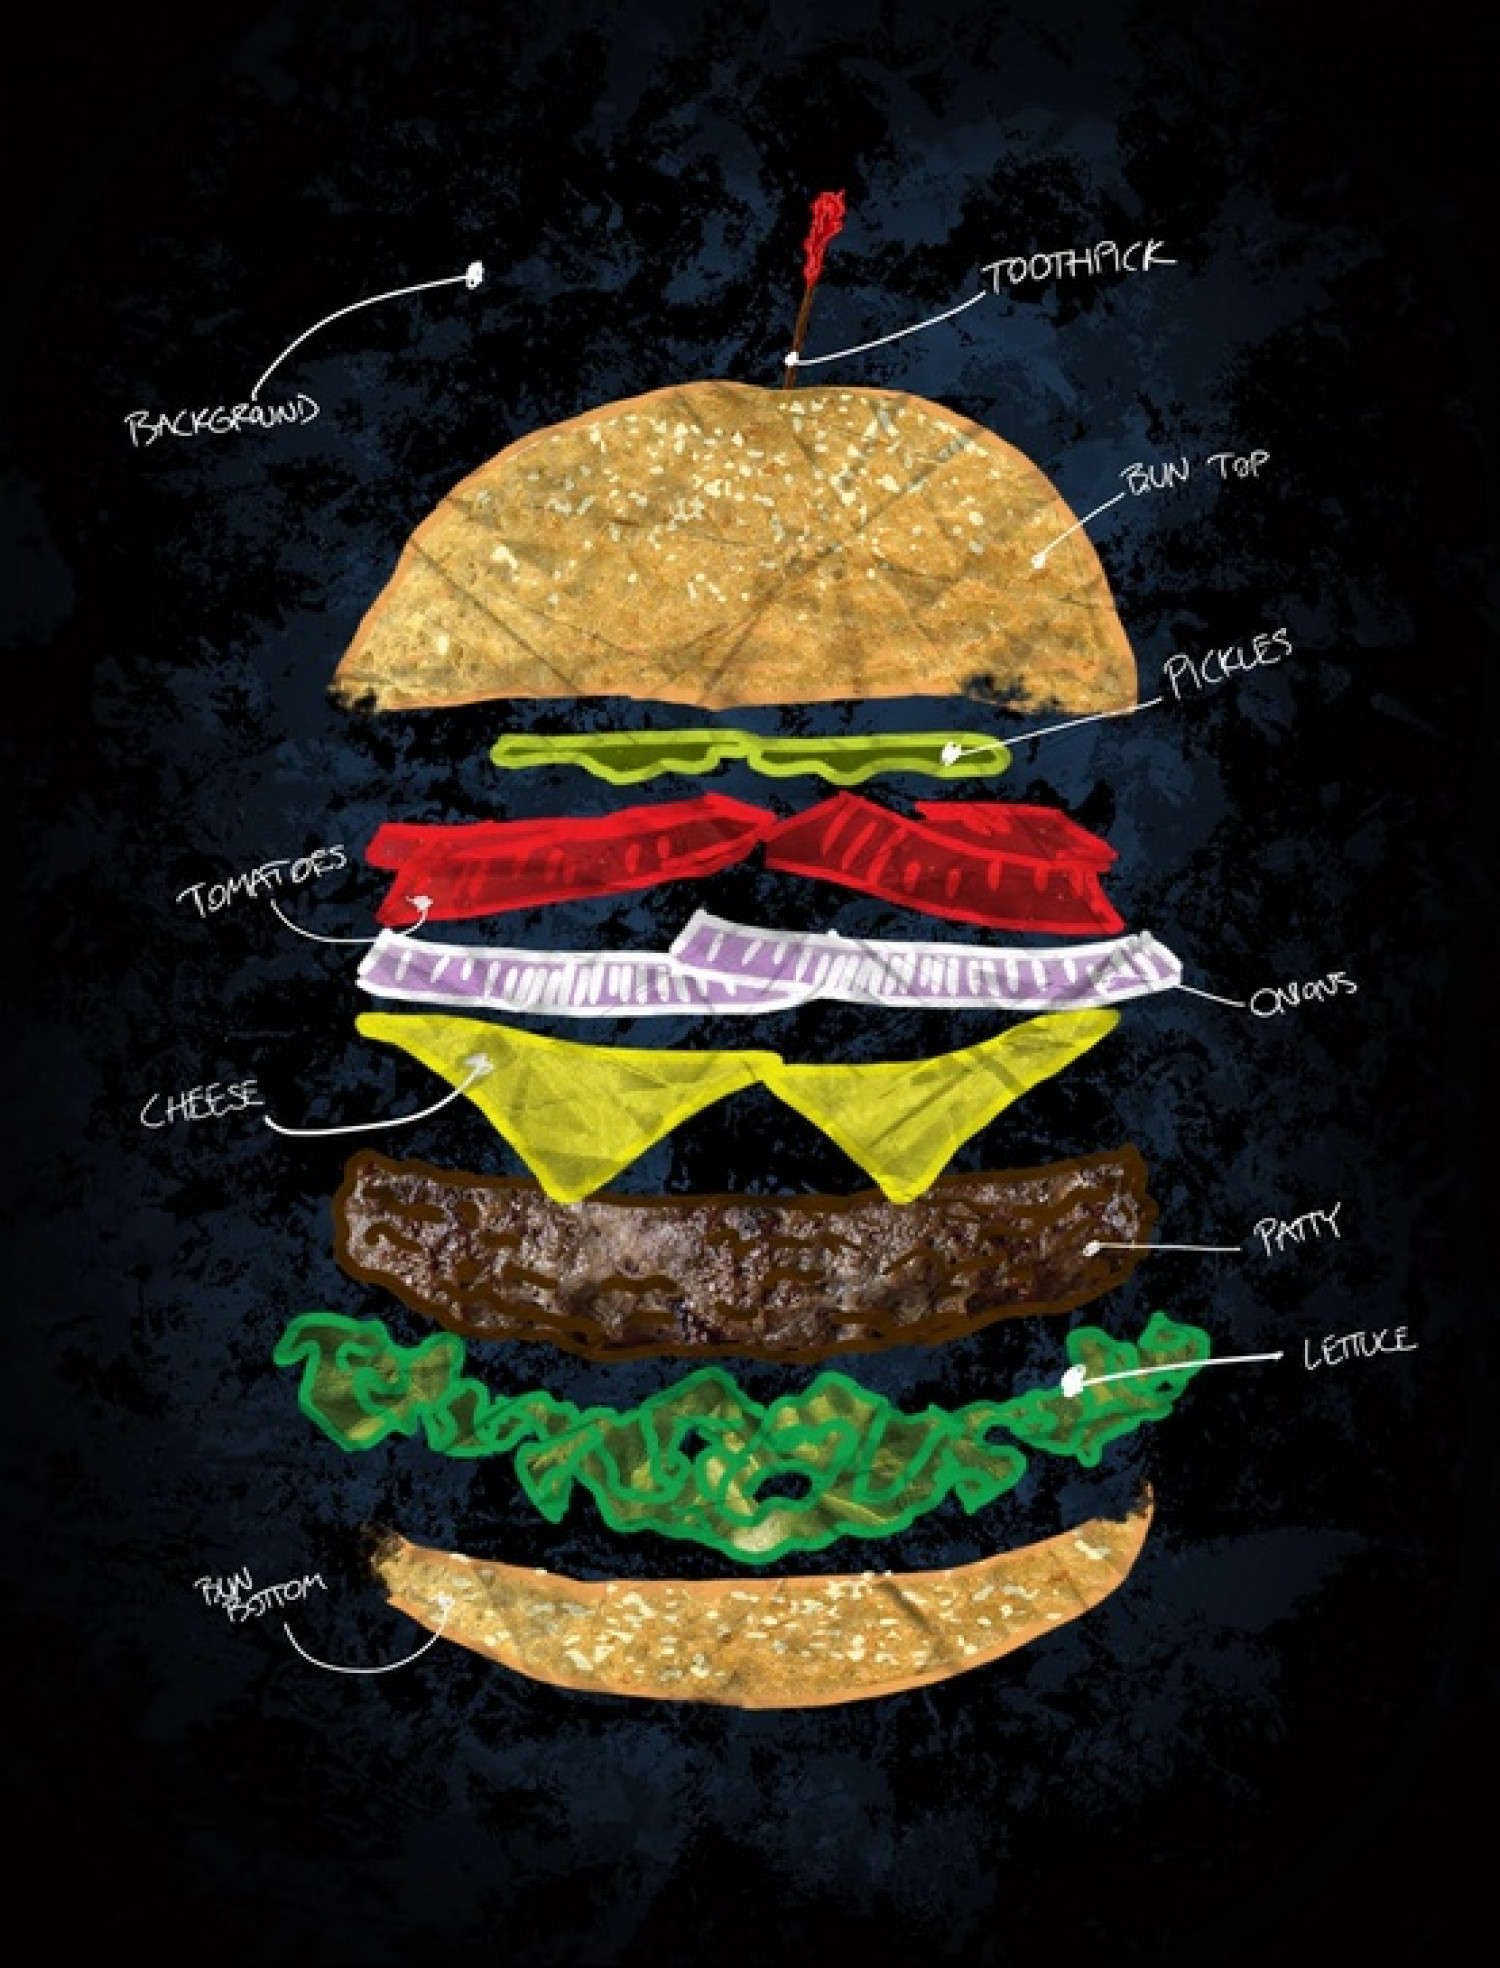 The Ultimate Cheeseburger Infographic